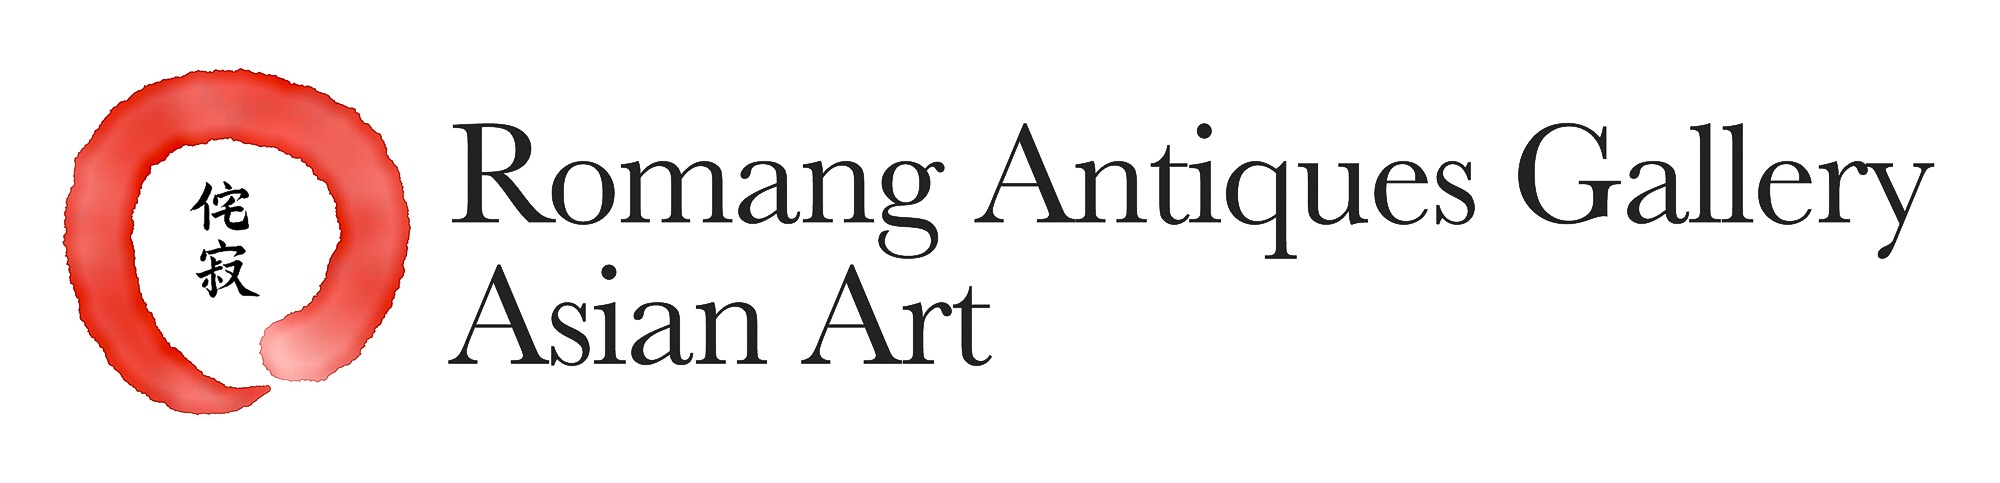 Romang Antiques Gallery